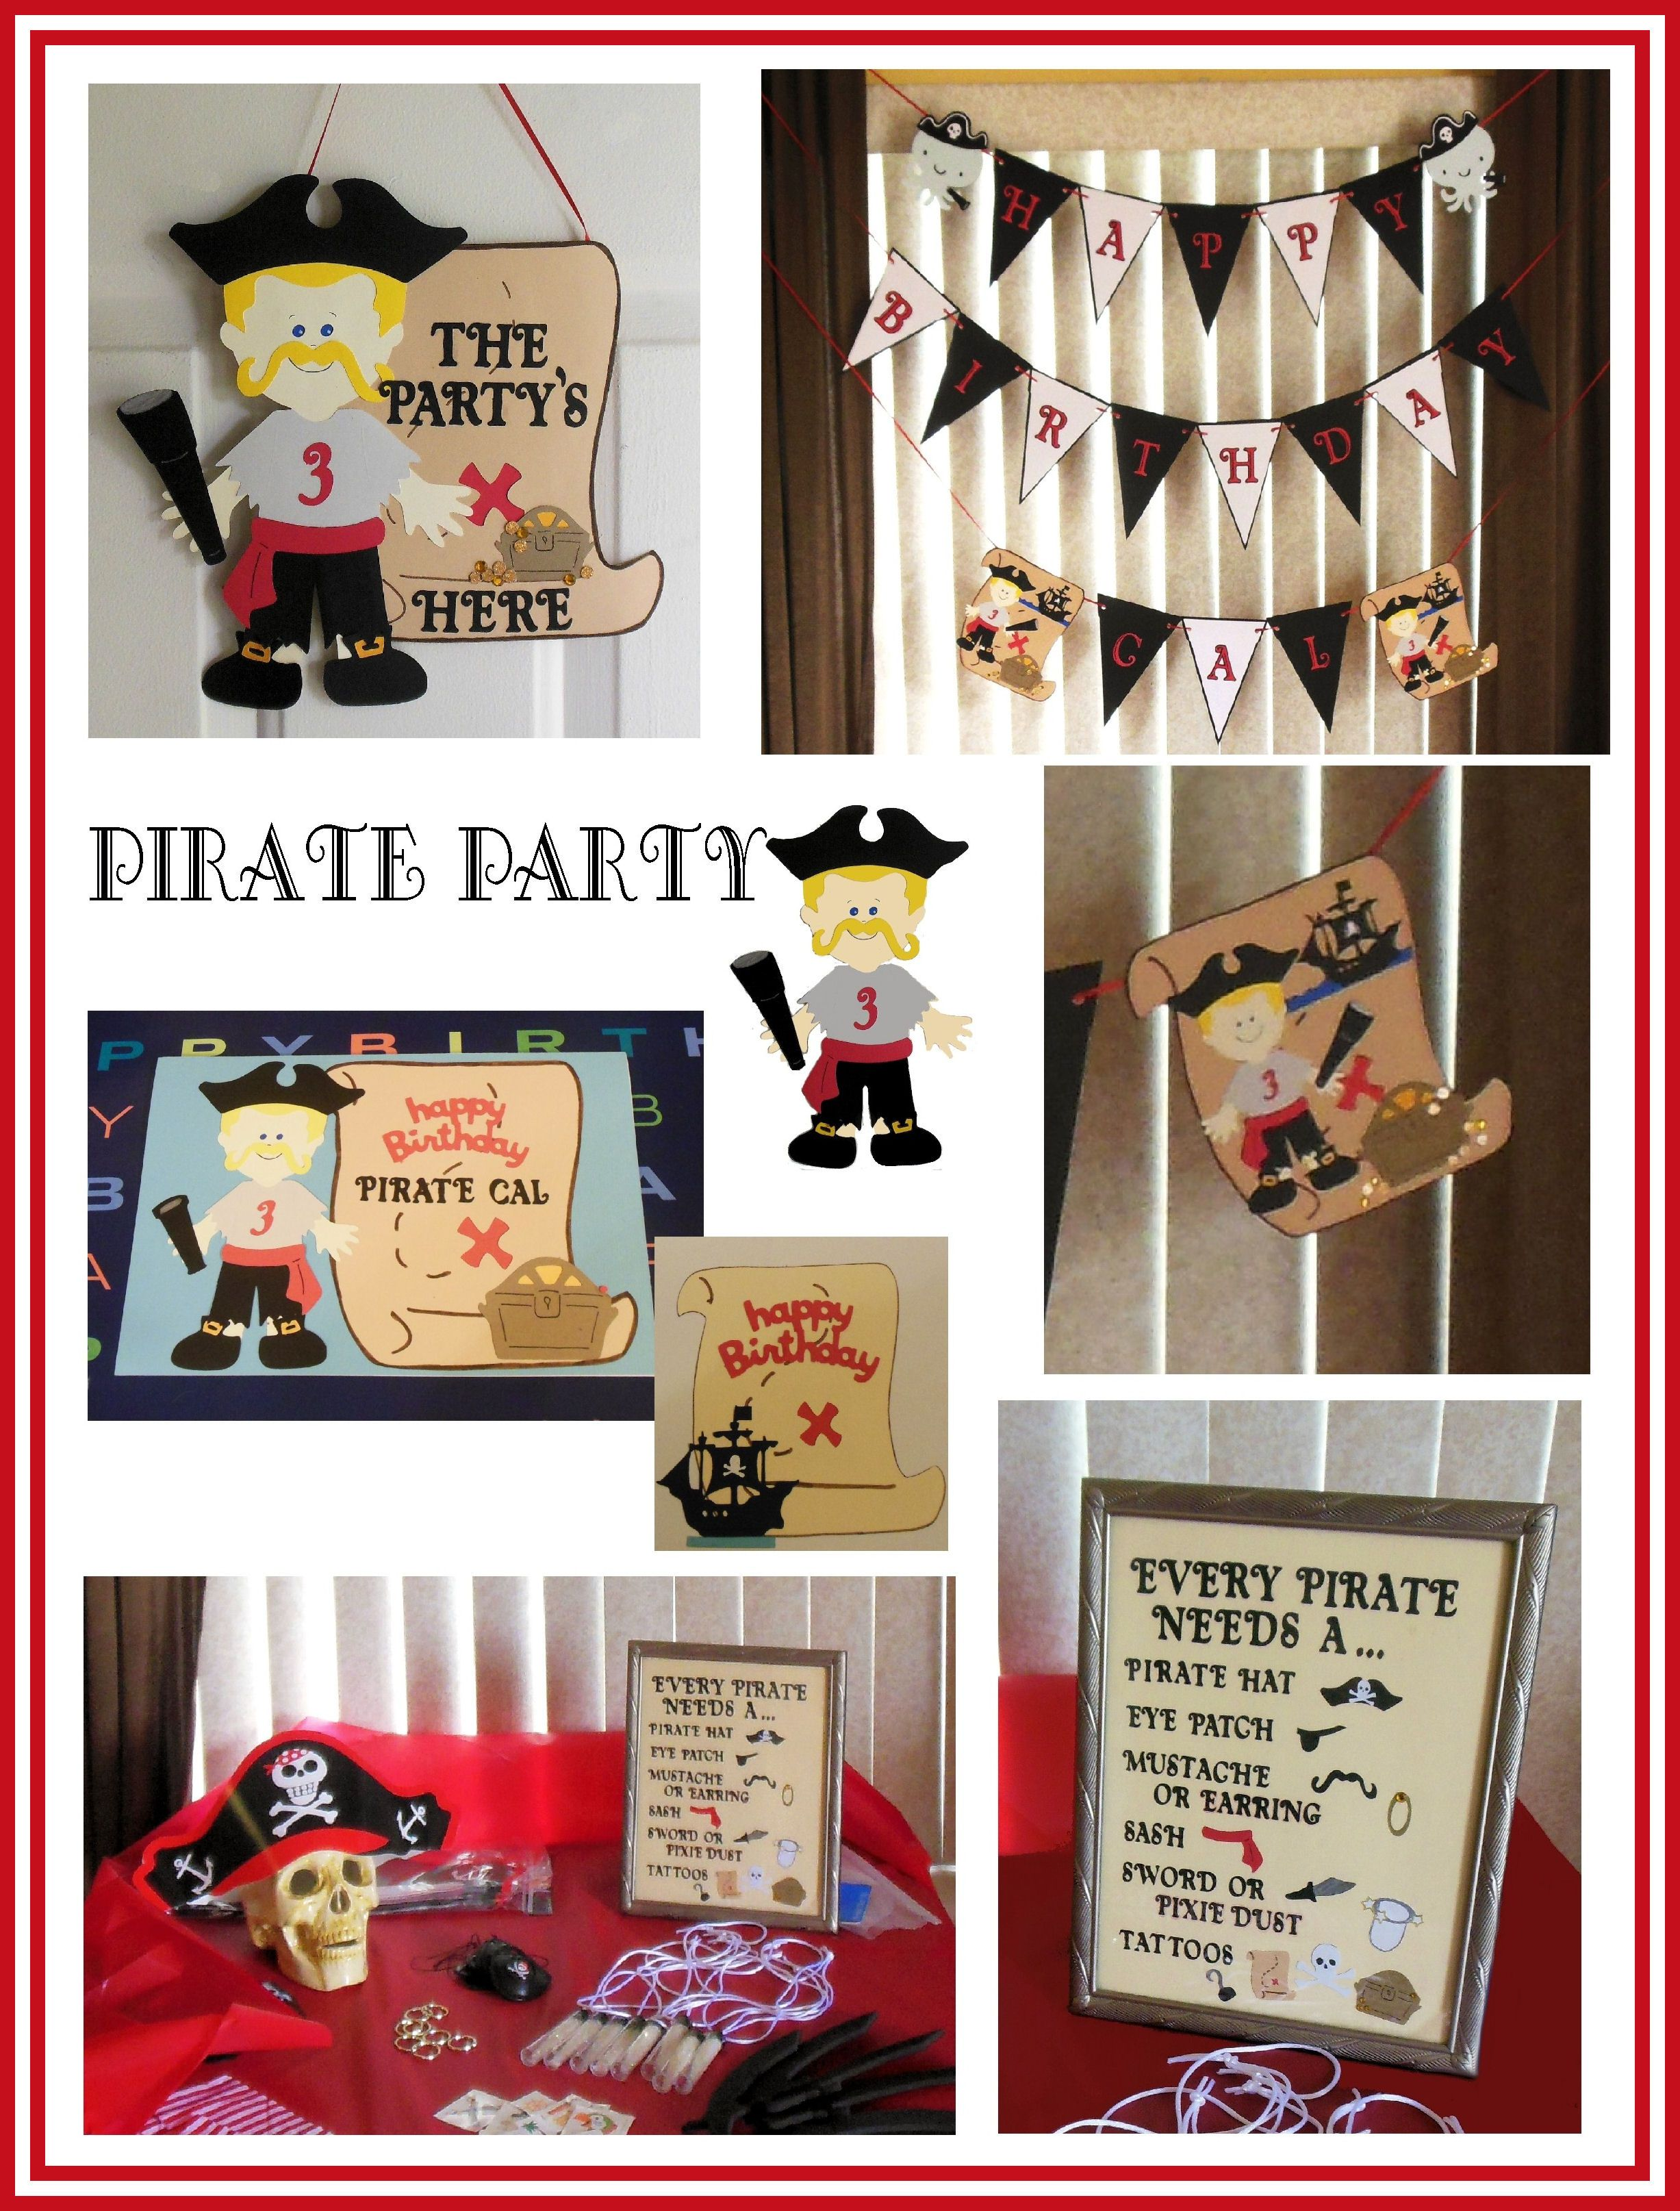 a gave adventure buried pin party and favors decorations treasure pirate will mateys around set games for treats map chart ideas make decor birthday me sail to idea this an designed course enjoy